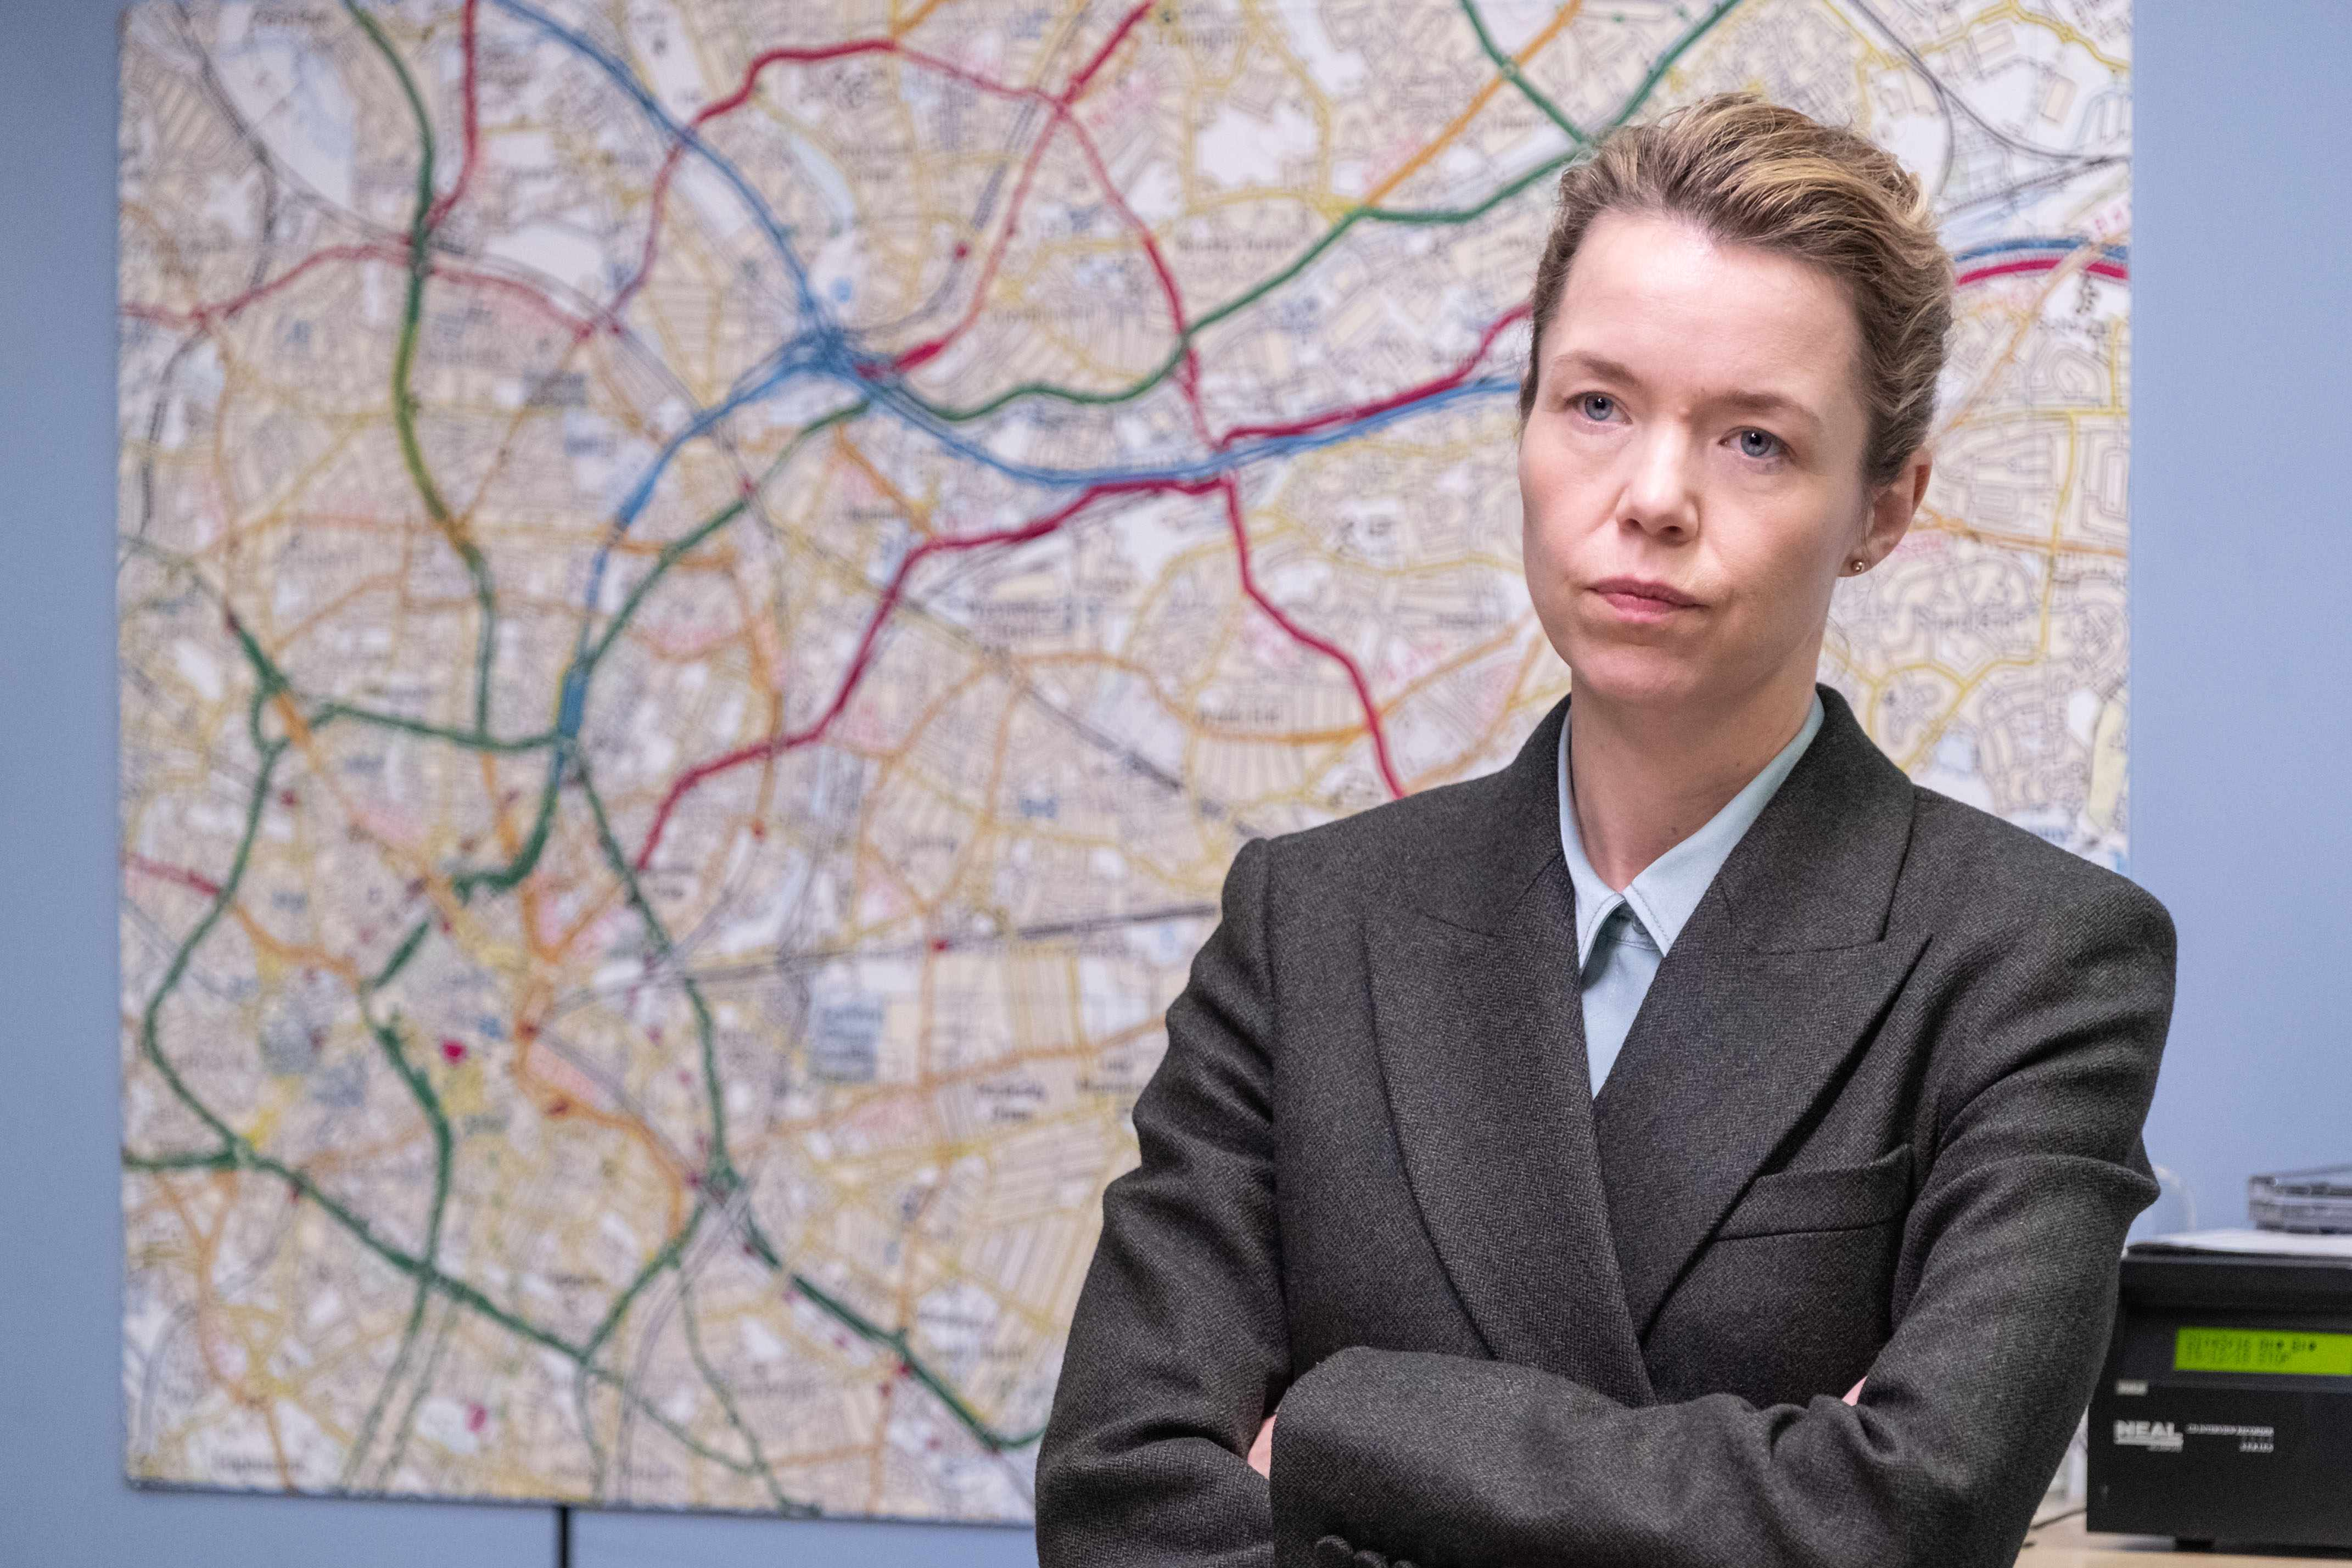 Anna Maxwell Martin plays Patricia Carmichael in Line of Duty